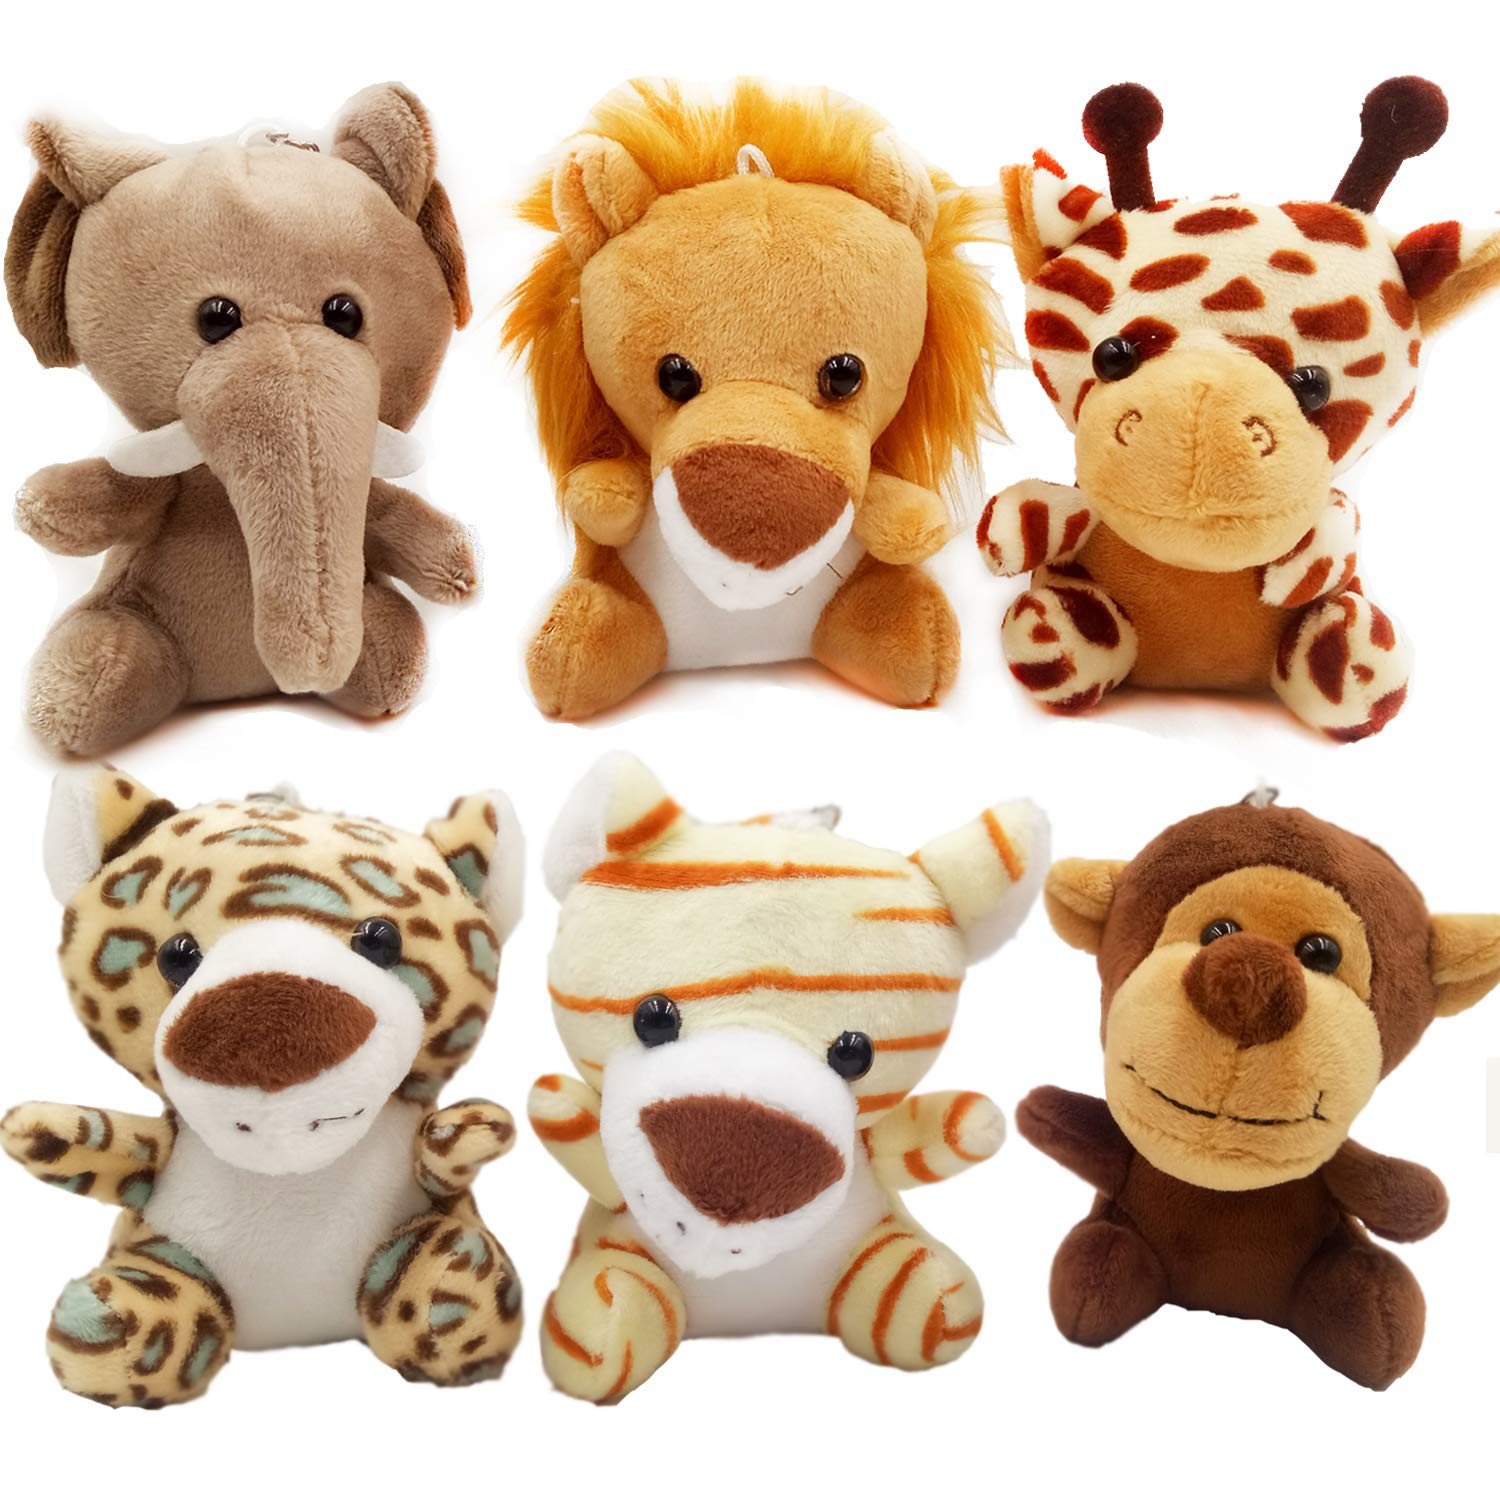 OuMuaMua Jungle Animal Plush Toys Stuffed Animals Set - 6pcs Cute Small Zoo Animals Plush Keychains for Kids Animal Themed Parties,Kindergarten Fun, Teacher Student Achievement Award, 4.8 Inch by OuMuaMua